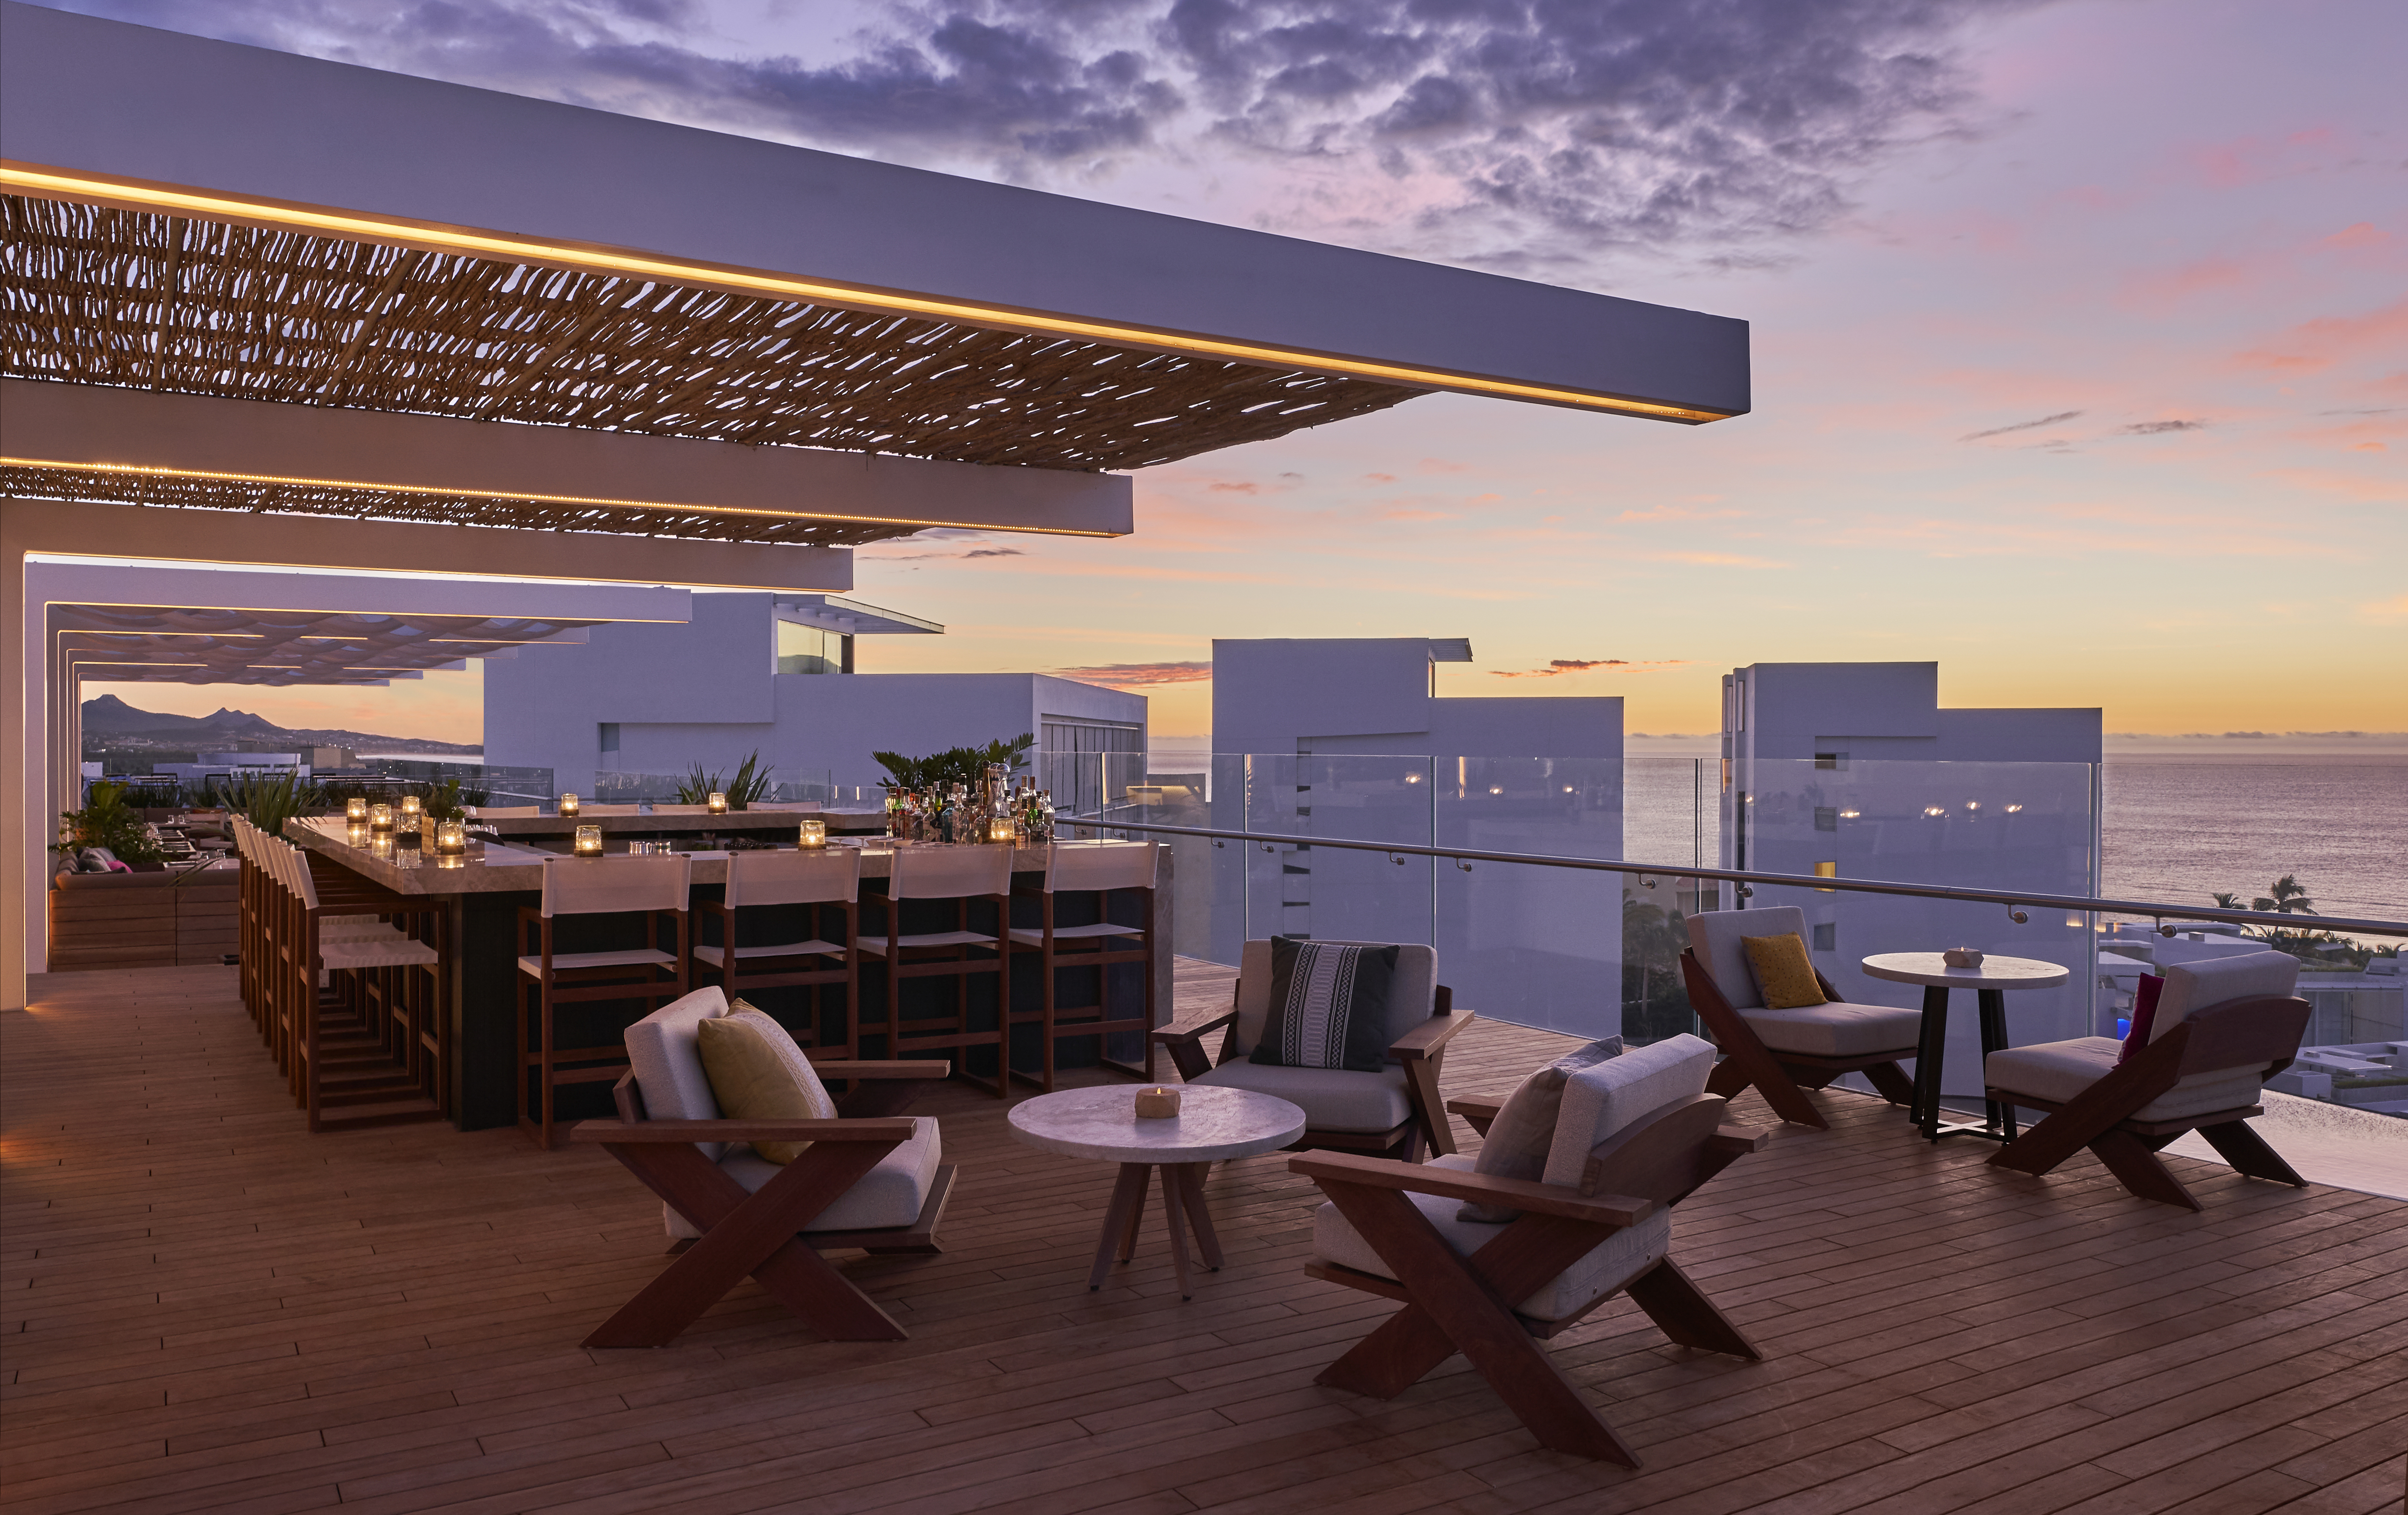 Viceroy Los Cabos: A Stunning Santuary